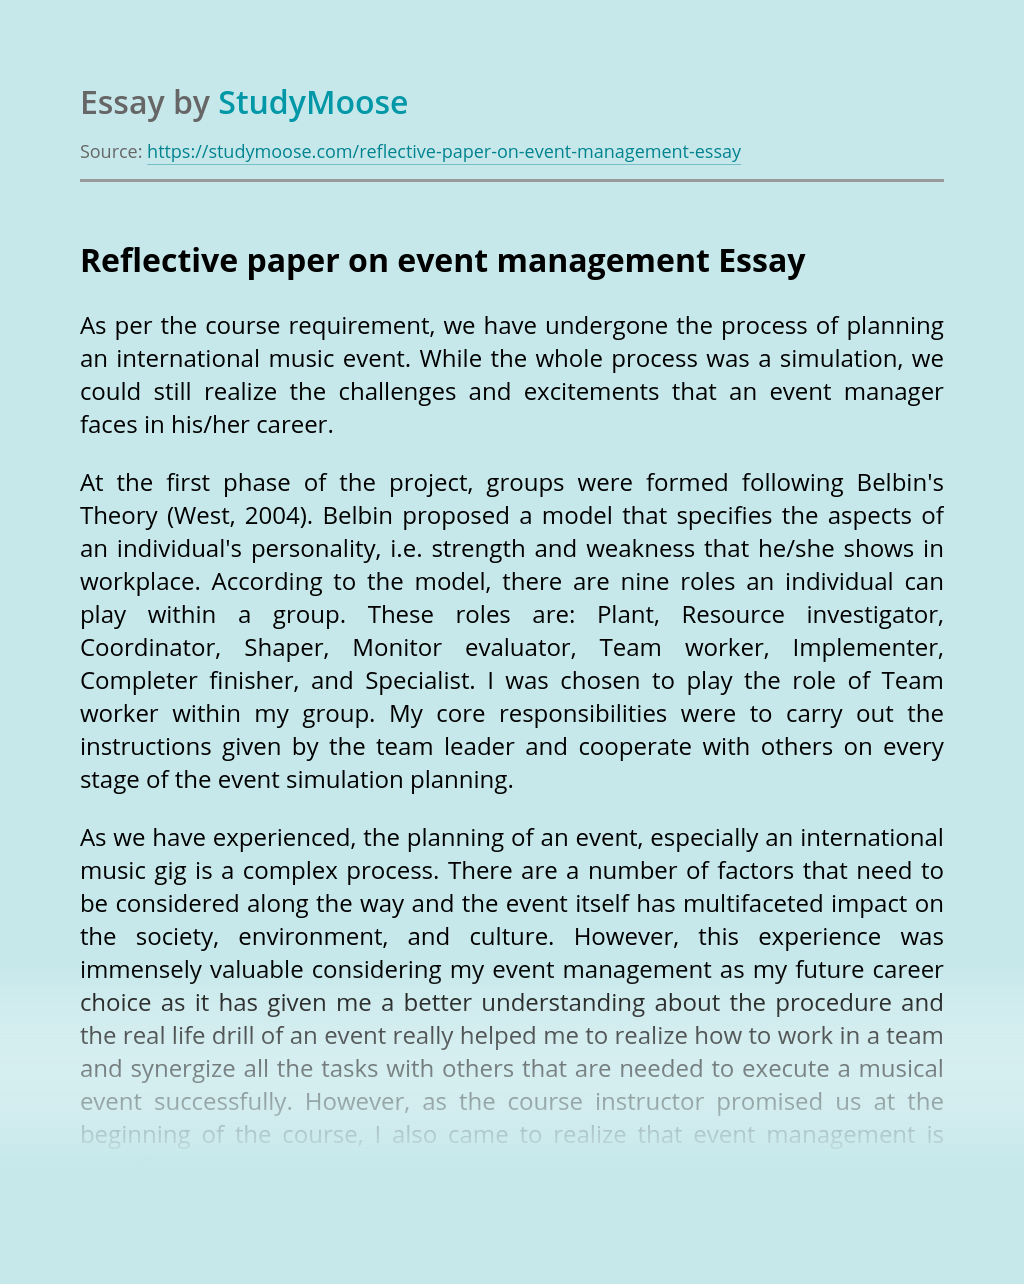 Reflective paper on event management